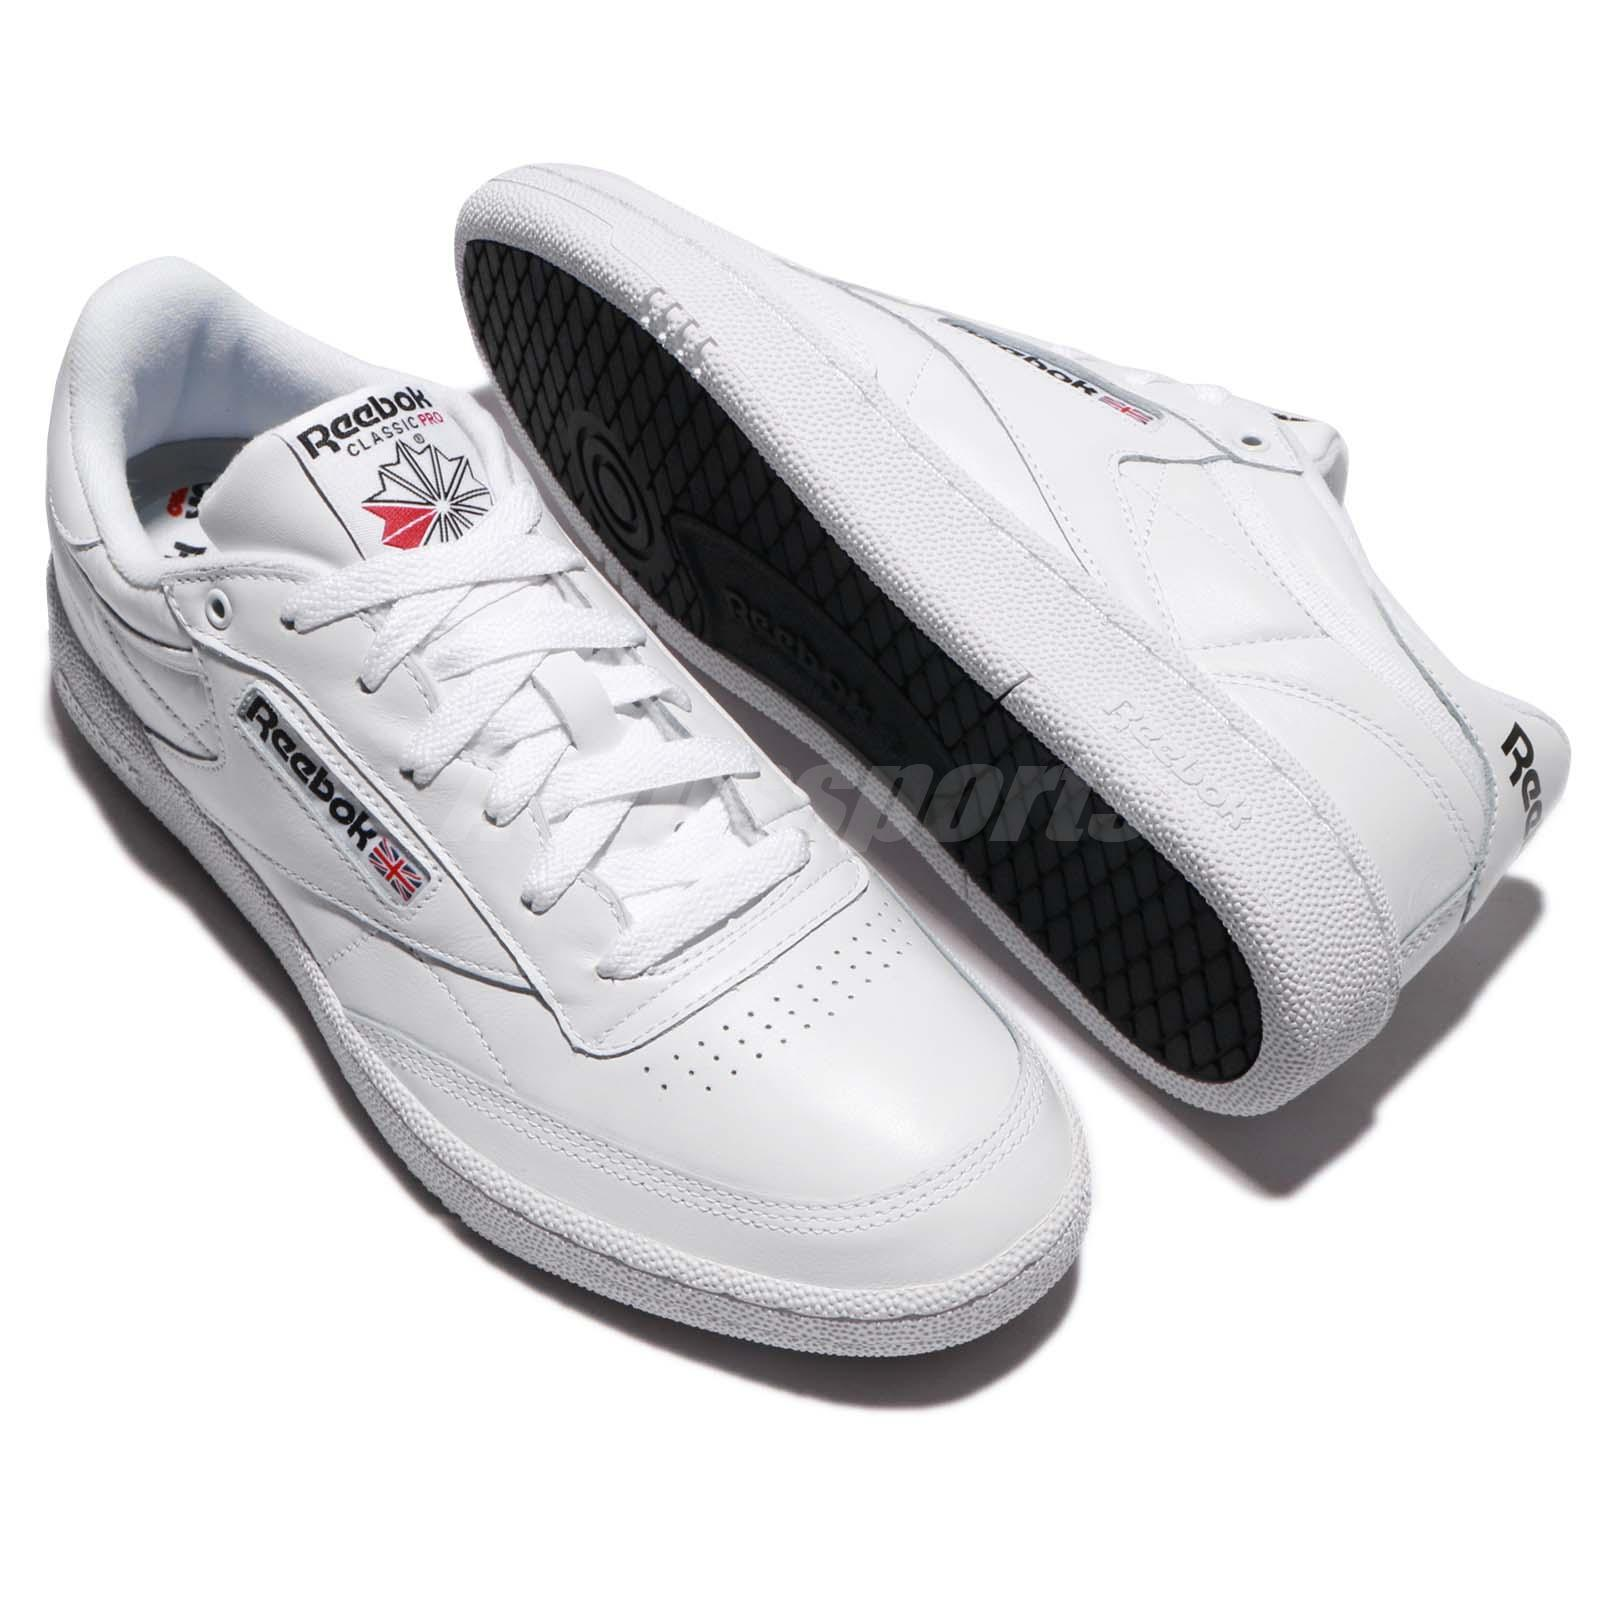 429a0fe05afd Reebok Club C 85 Pro Leather White Classic Men Shoes Sneakers ...